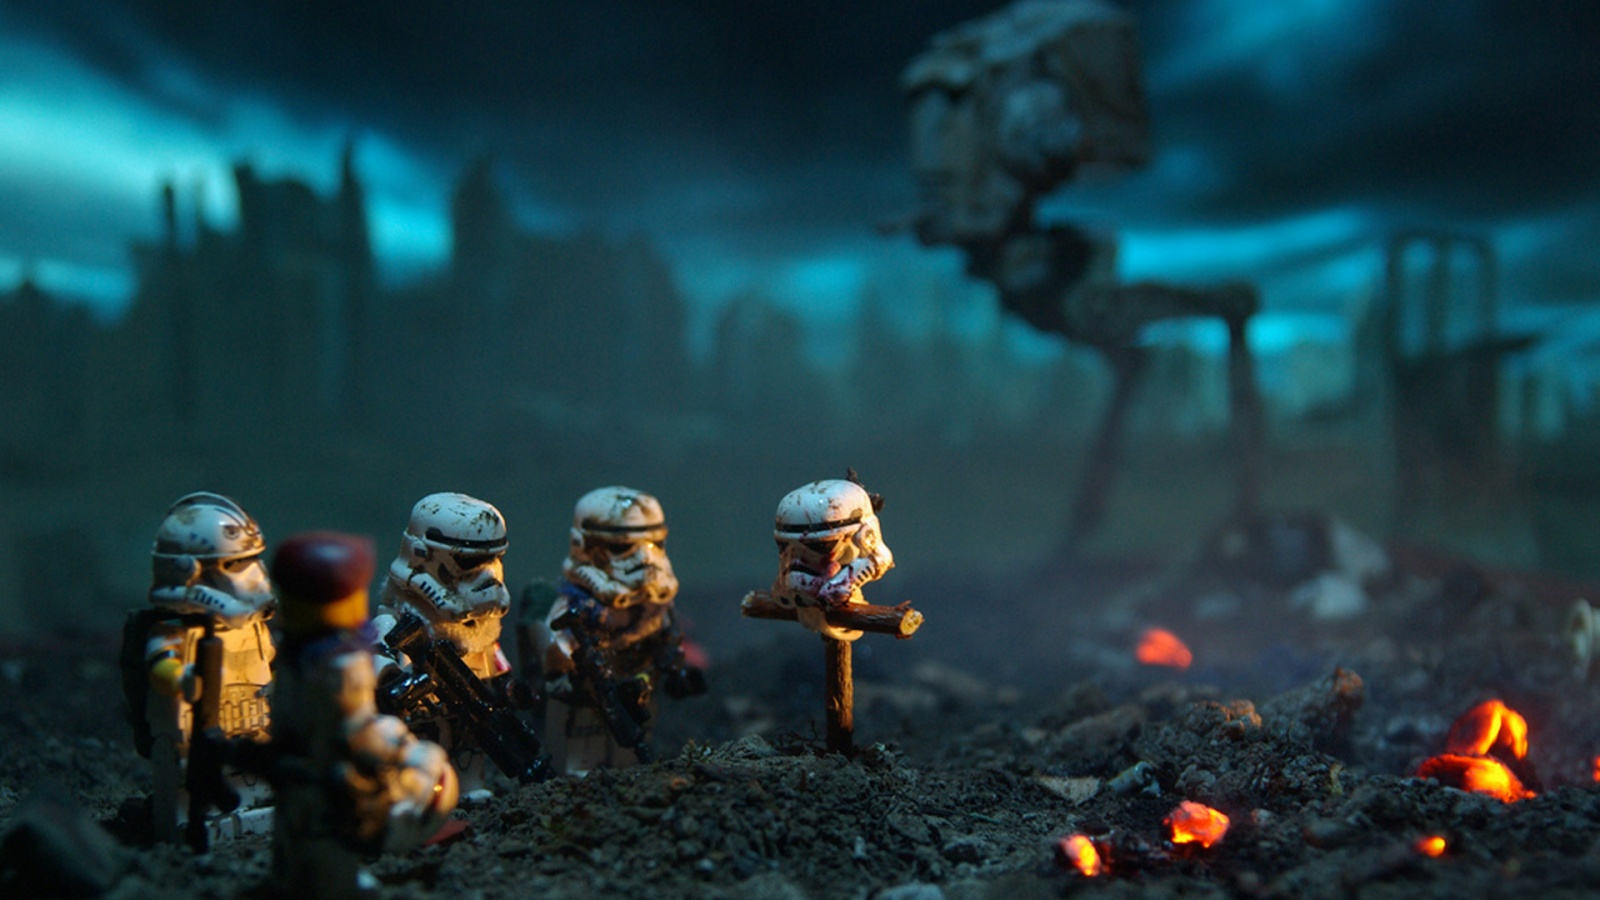 Lego Star Wars Stormtroopers Wallpapers In Jpg Format For Free Download